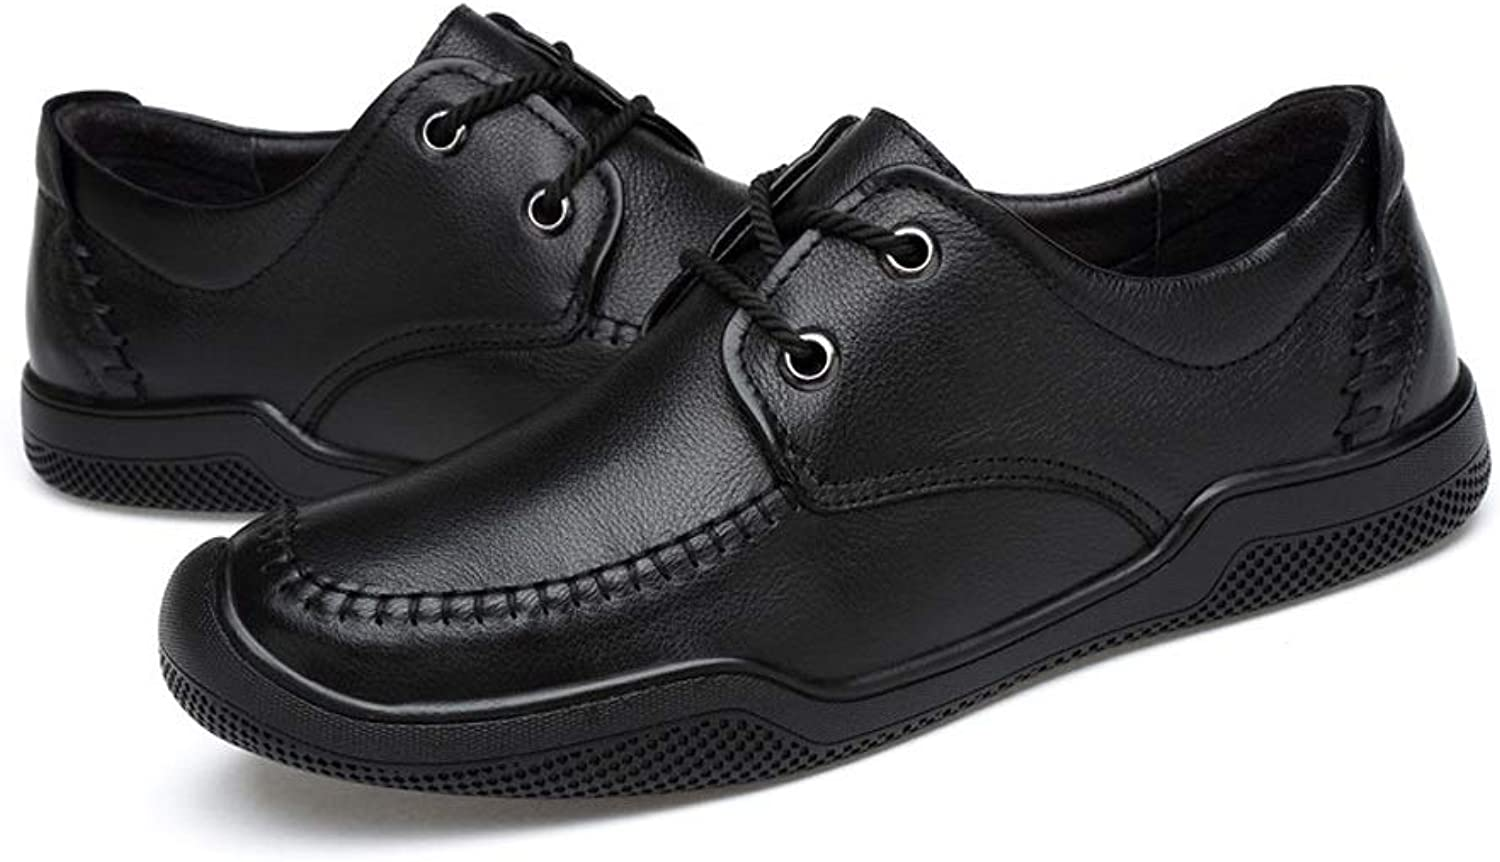 CATEDOT Men's shoes Casual Comfortable Breathable Travel Lightweight leather shoes (color   Black, Size   7.5UK)